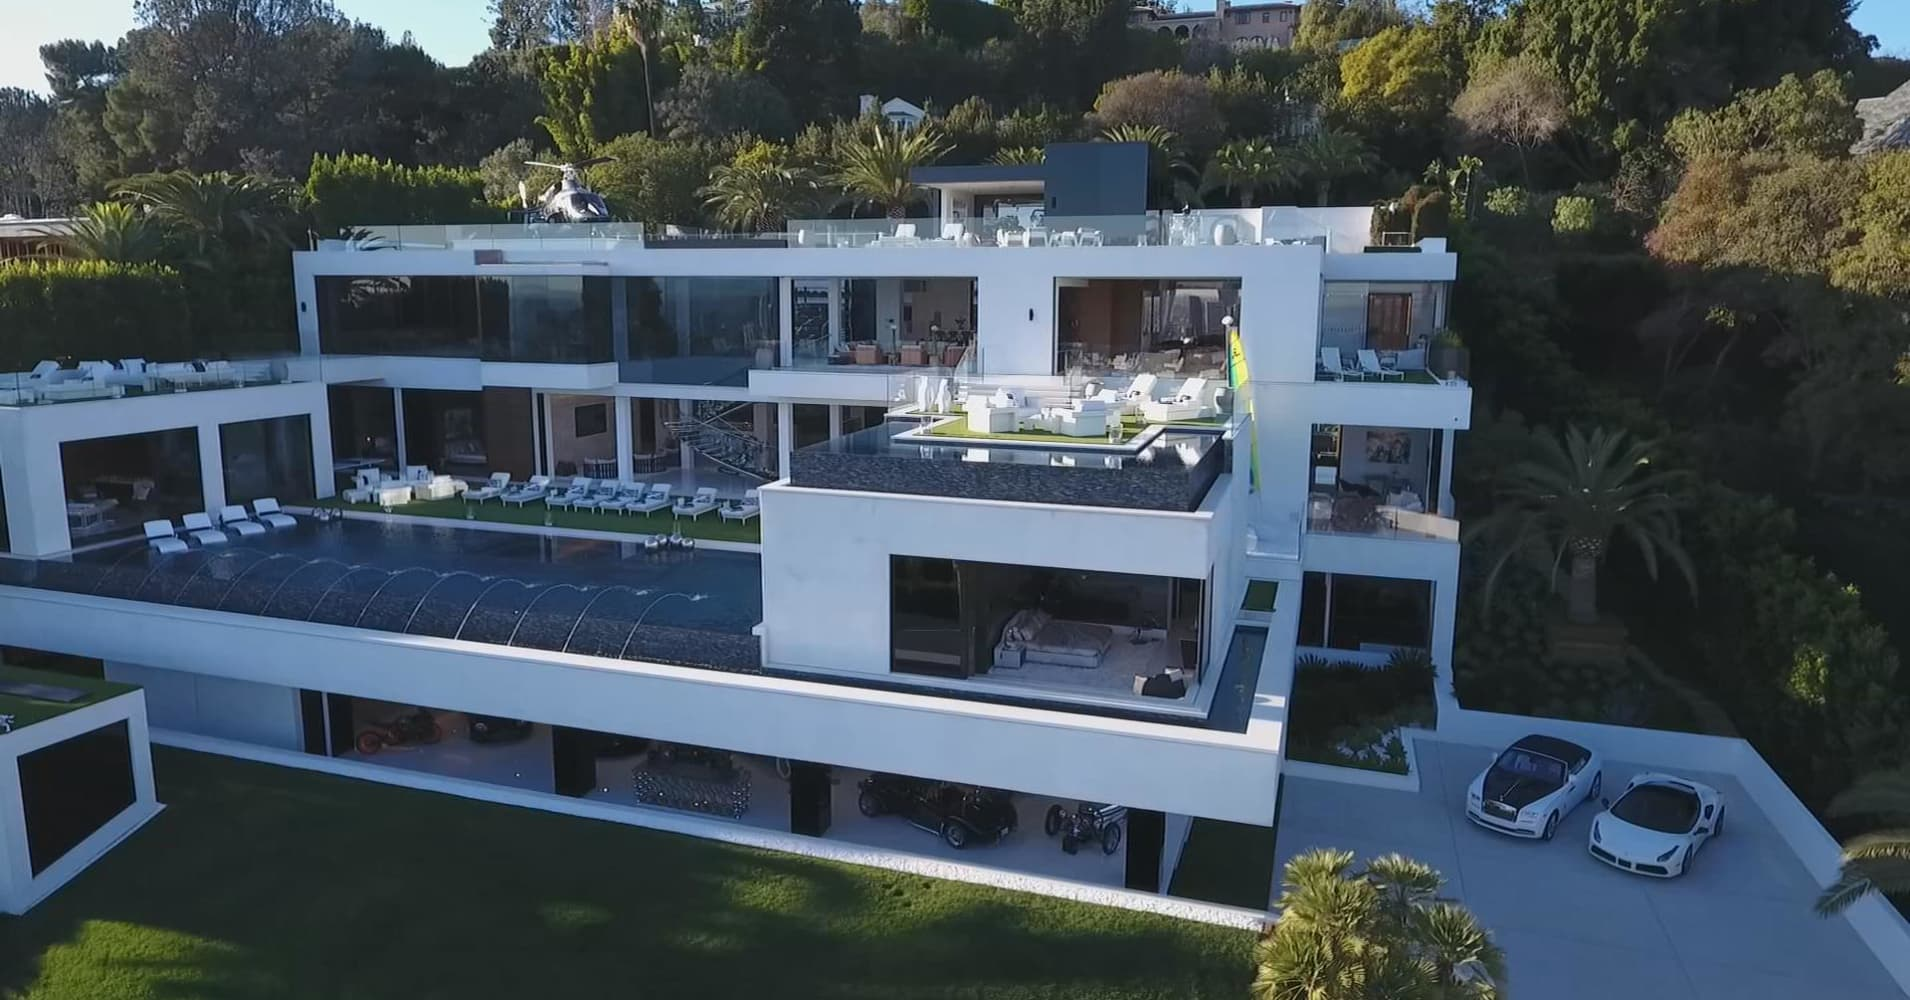 Most expensive home secret lives super rich periscope 360 Home for the rich